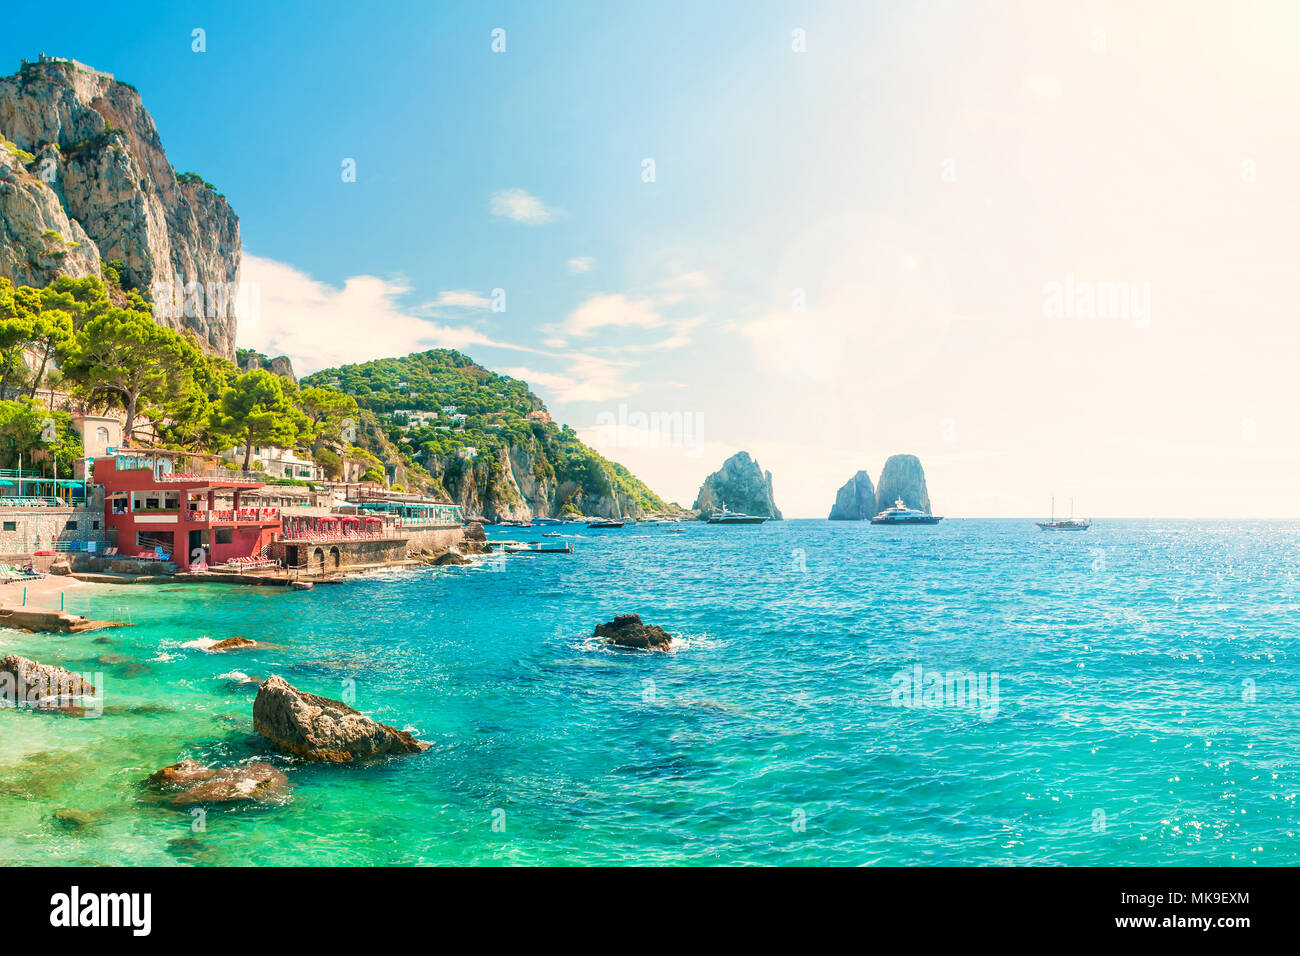 view of faraglioni rocks at sunset from Marina Piccola beach on summer day with turquoise blue waters and beachfront cafes, Capri, Italy Stock Photo